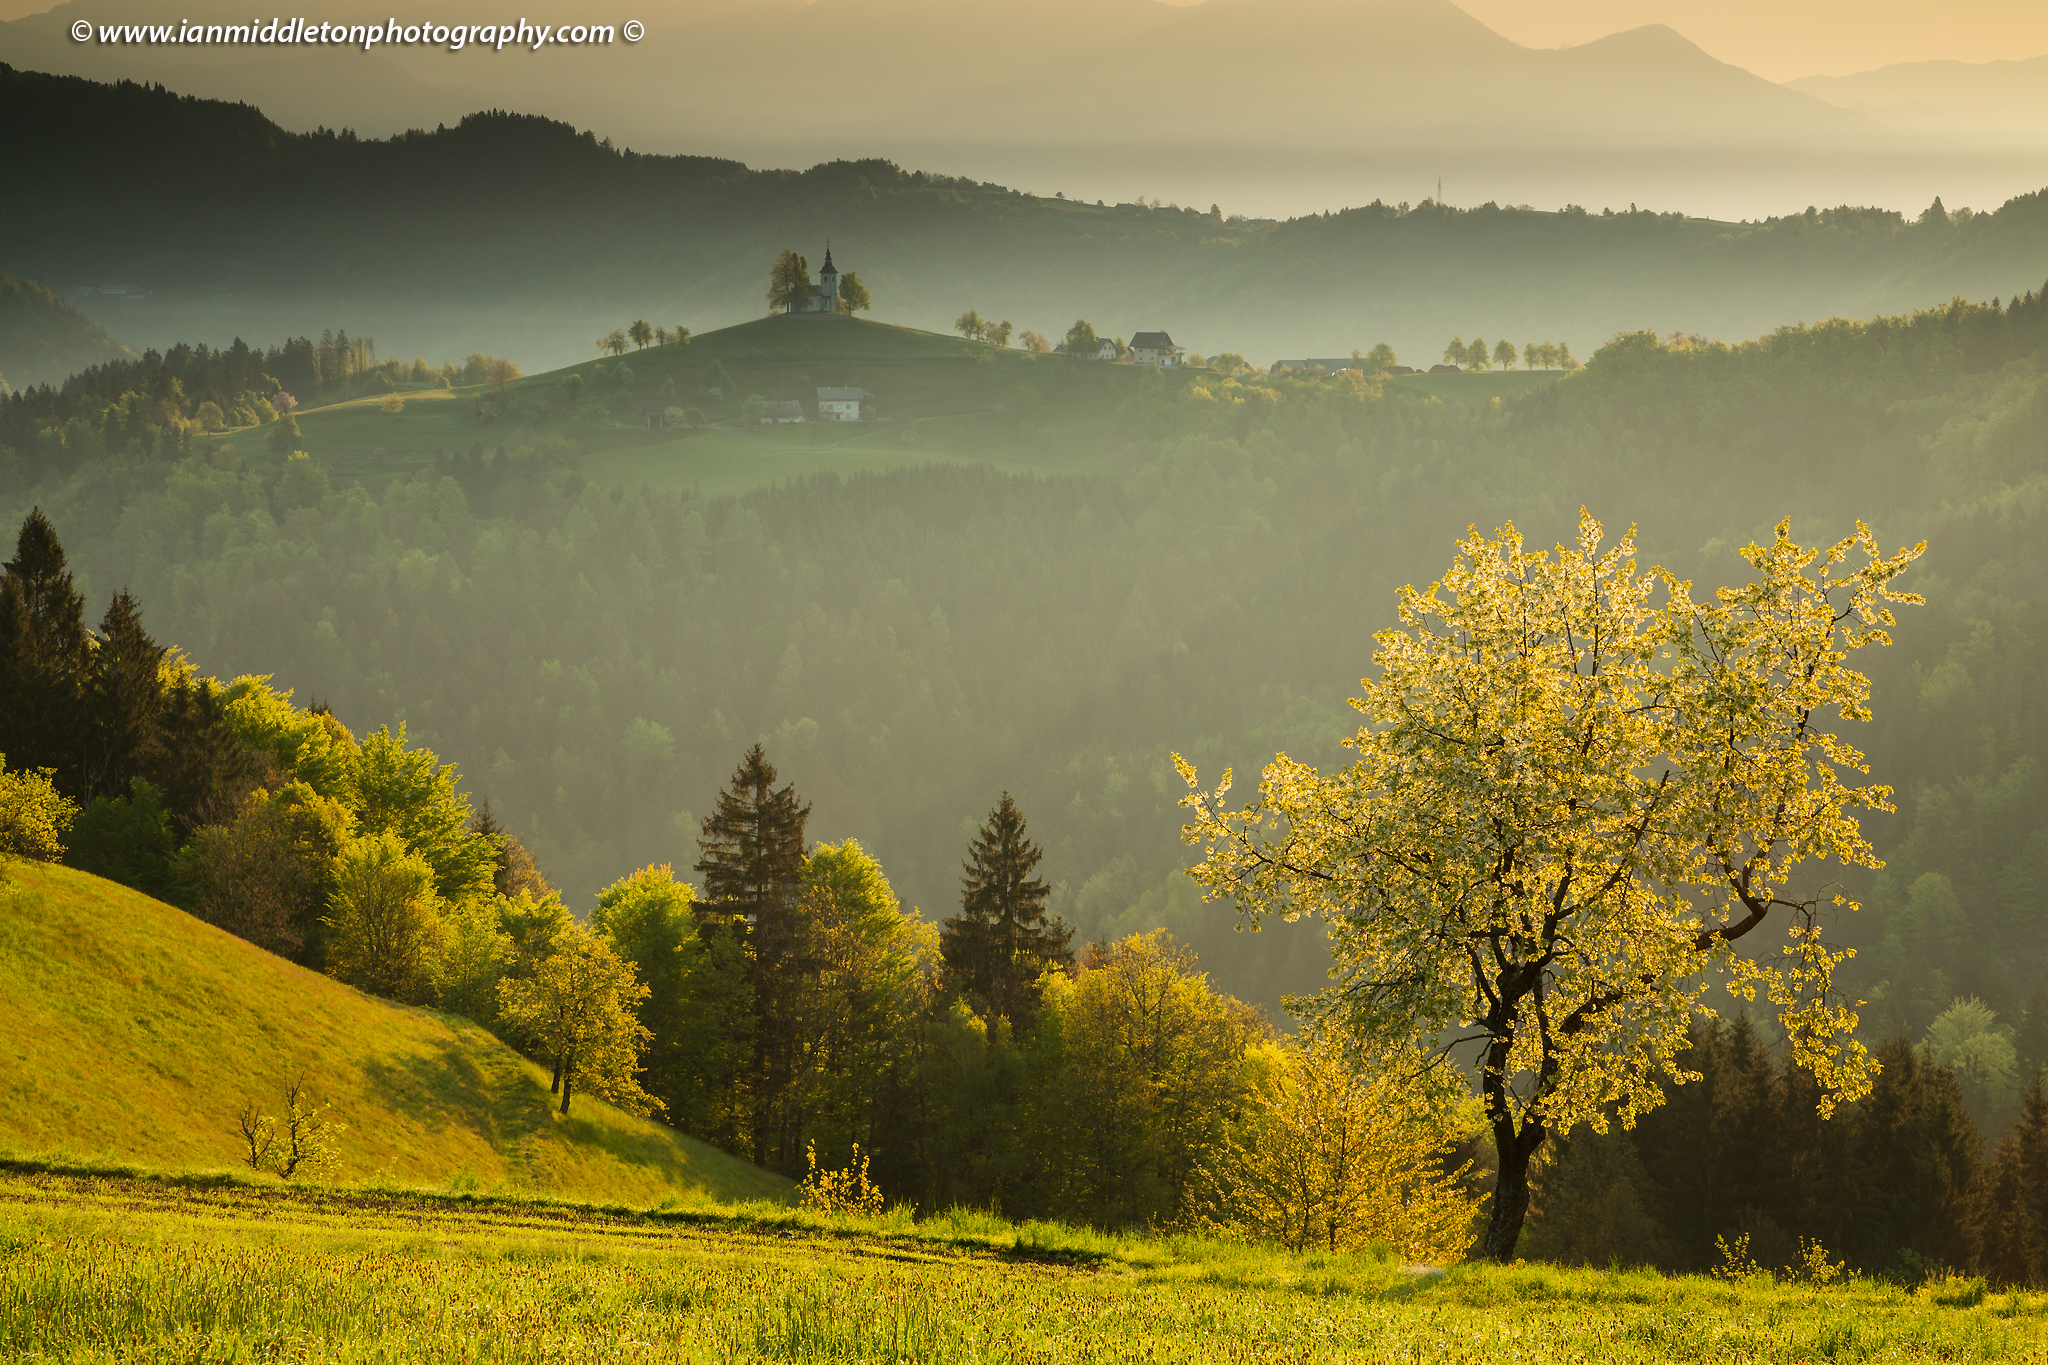 Early morning view from Rantovše hill across to Sveti Tomaz nad Praprotnim (church of Saint Thomas) and the Kamnik Alps, Slovenia.